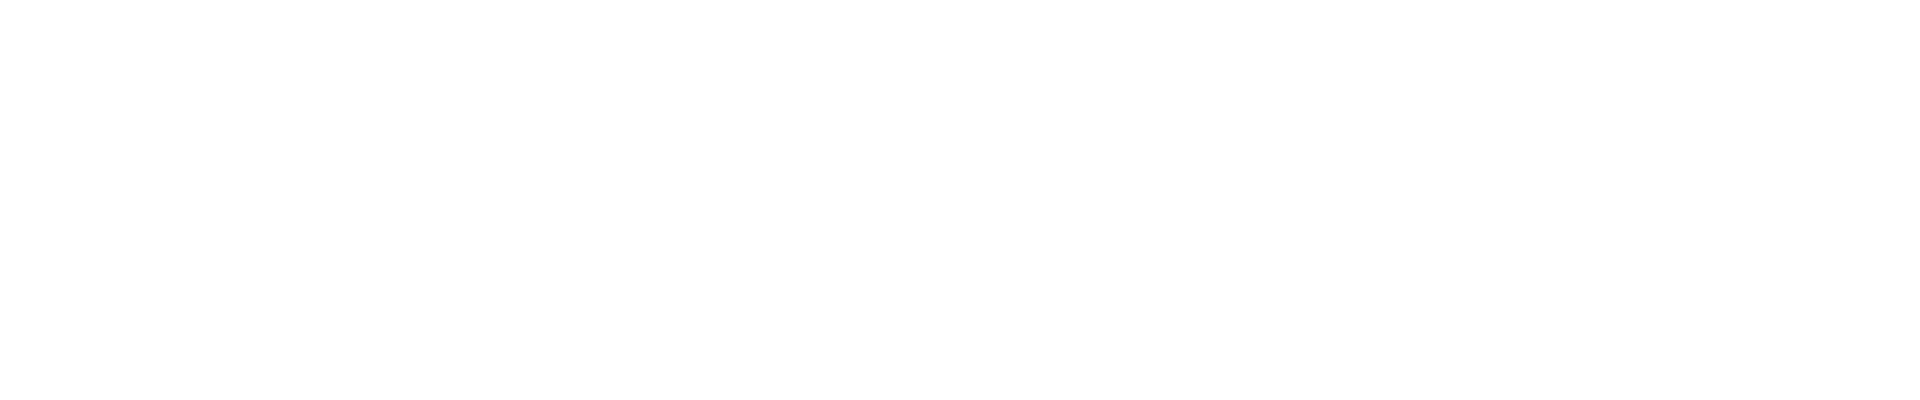 Quote_Janko_01.png